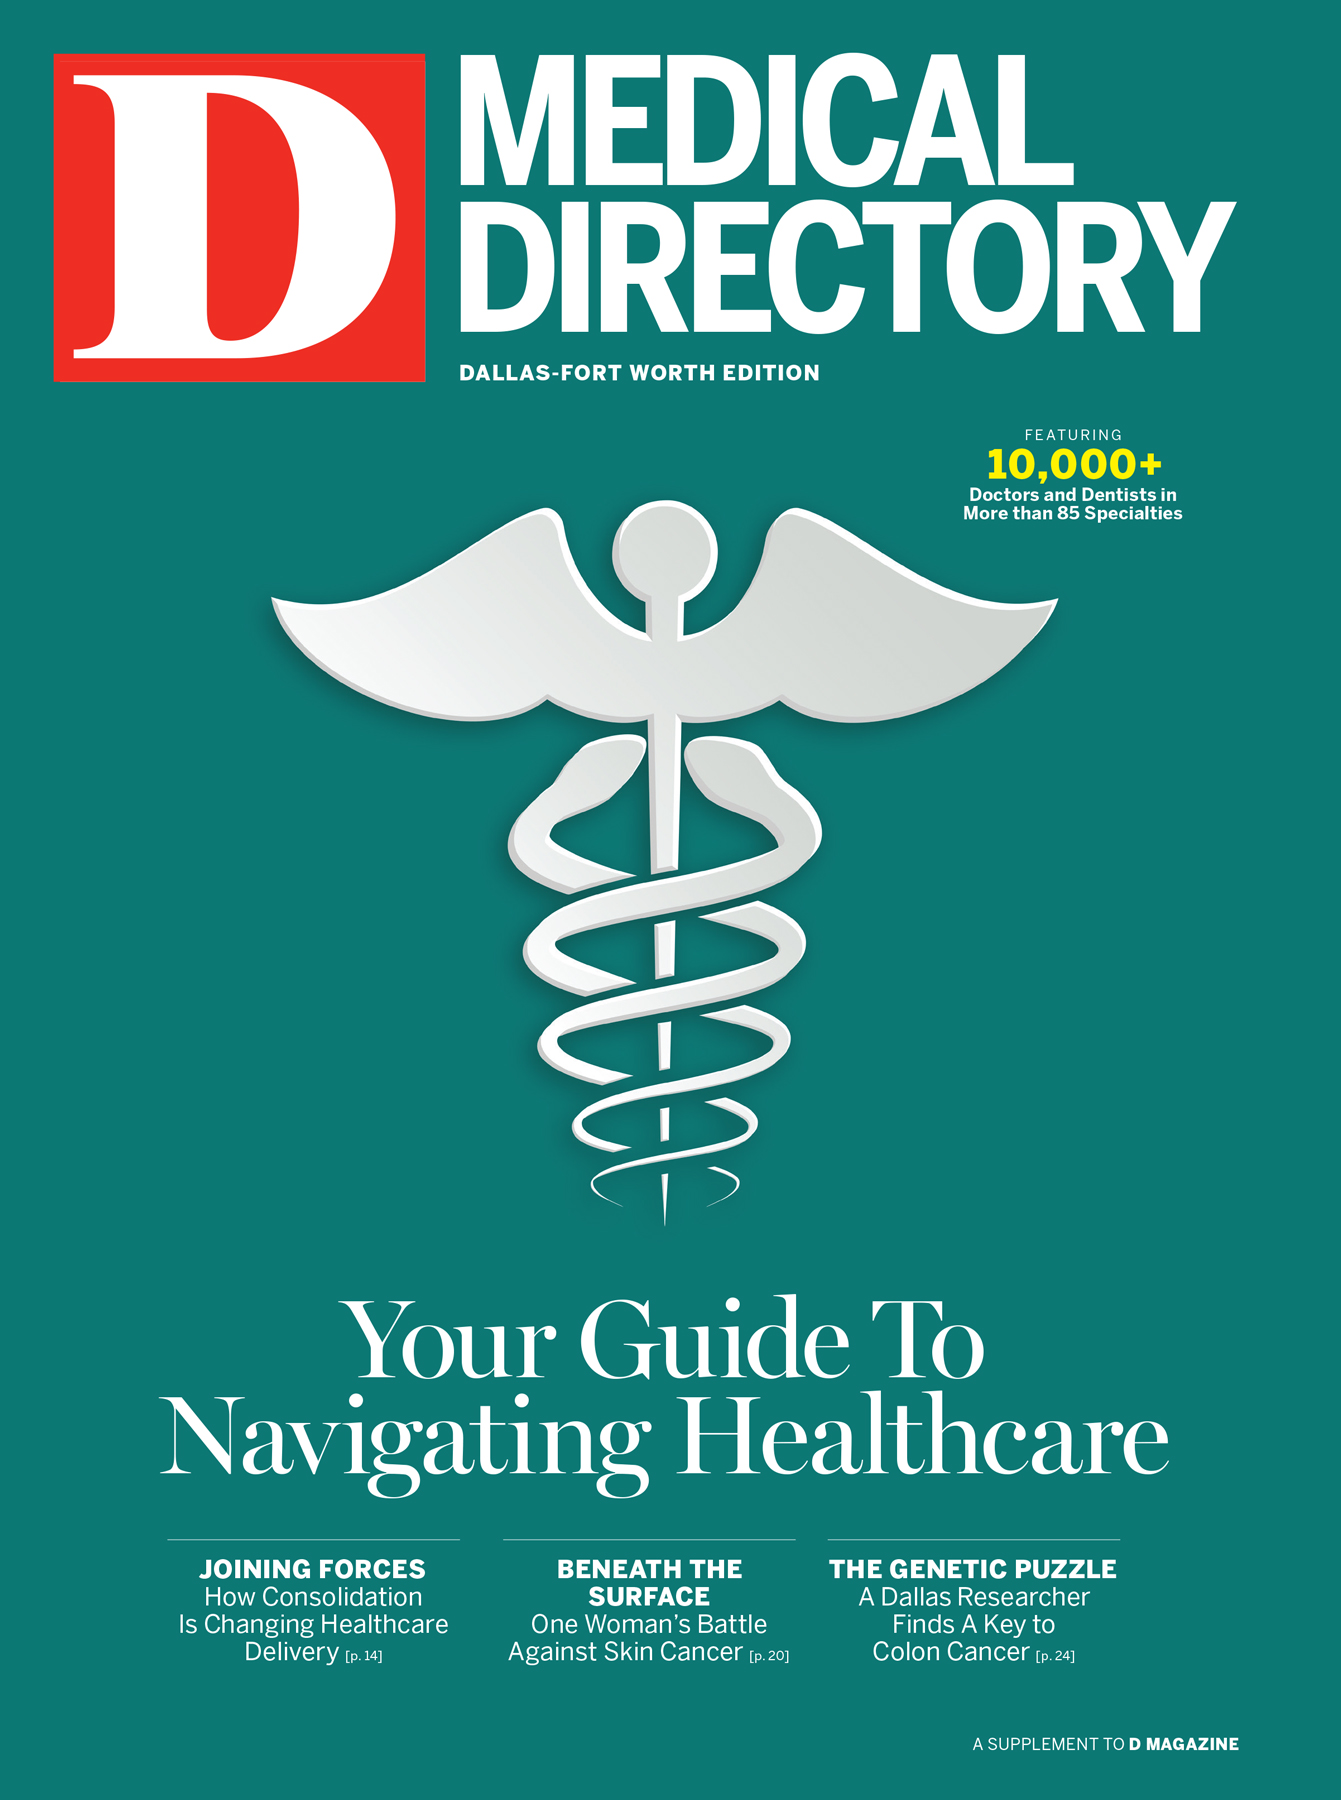 Dallas Medical Directory 2015 cover